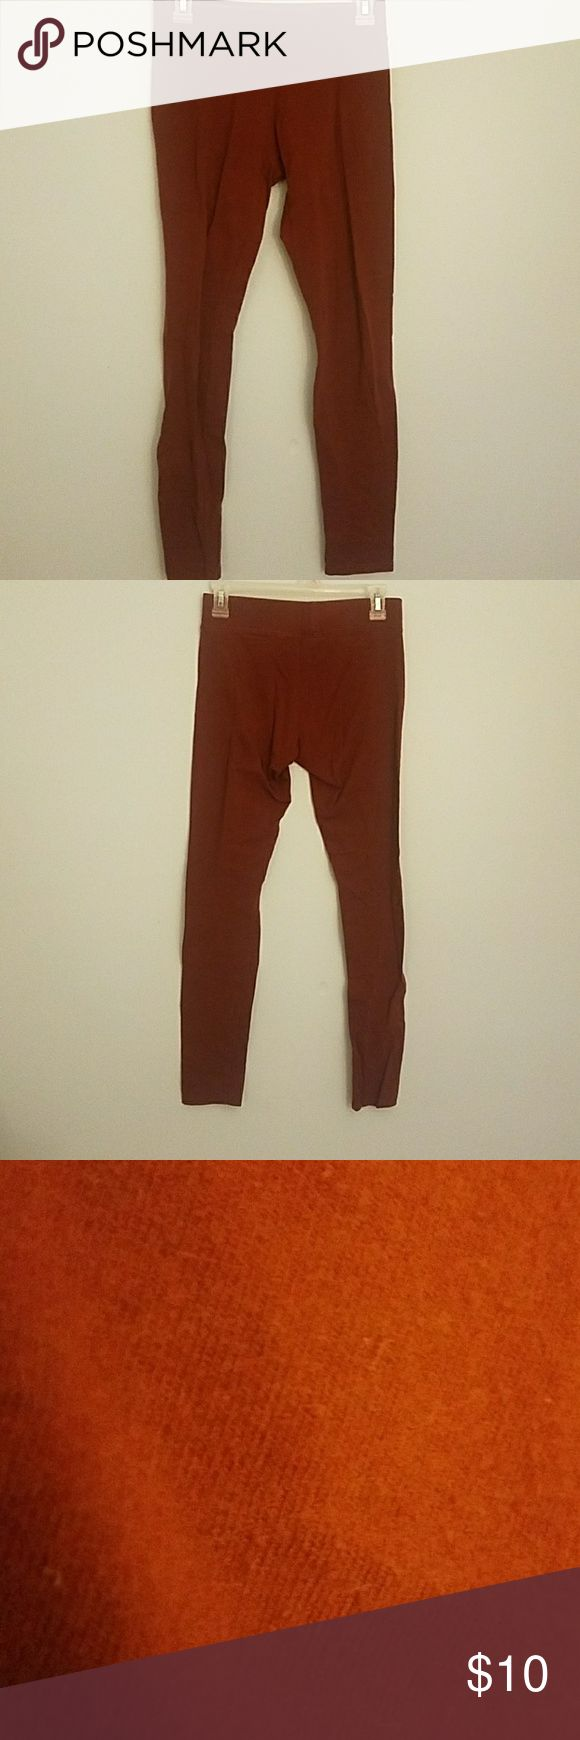 Vanity Maroon Leggings A bit see through. Good to wear under dresses and skirts. Very comfortable. Hardly worn. No wear and tear and in great condition. Vanity Pants Leggings